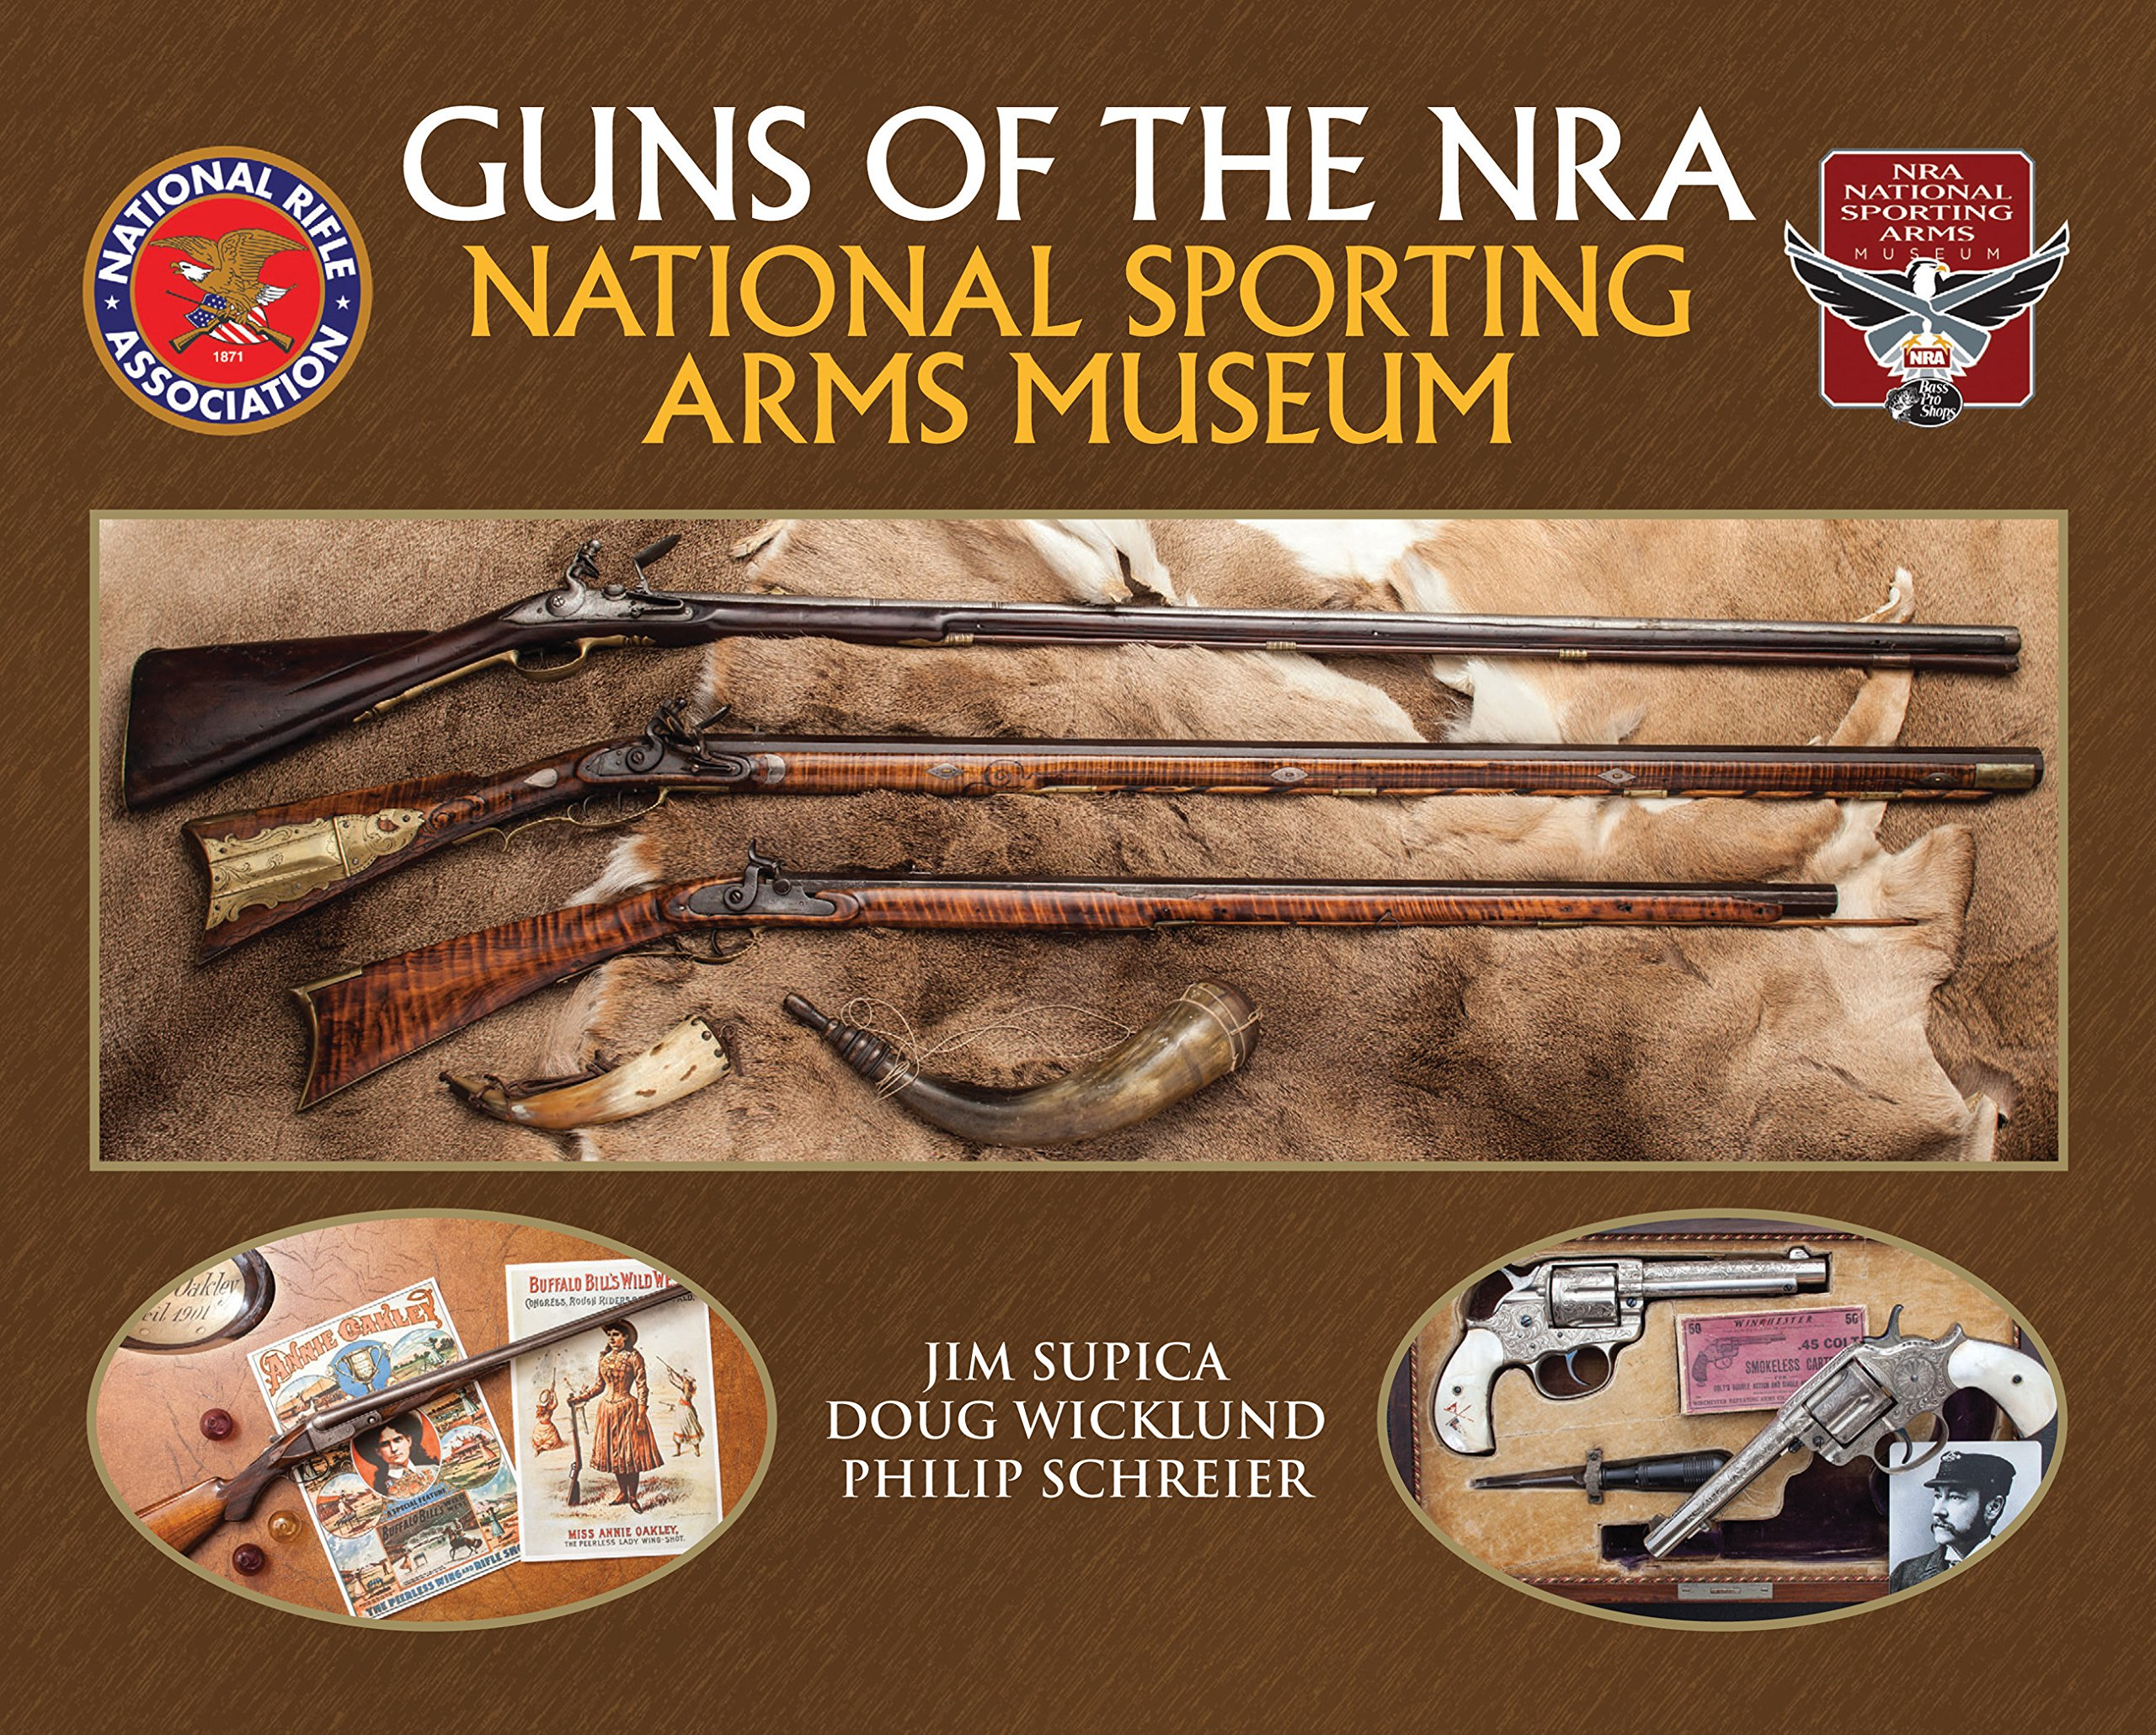 Teddy roosevelt guns to be displayed at nra national - Amazon Com Guns Of The Nra National Sporting Arms Museum 9780785835325 Jim Supica Books